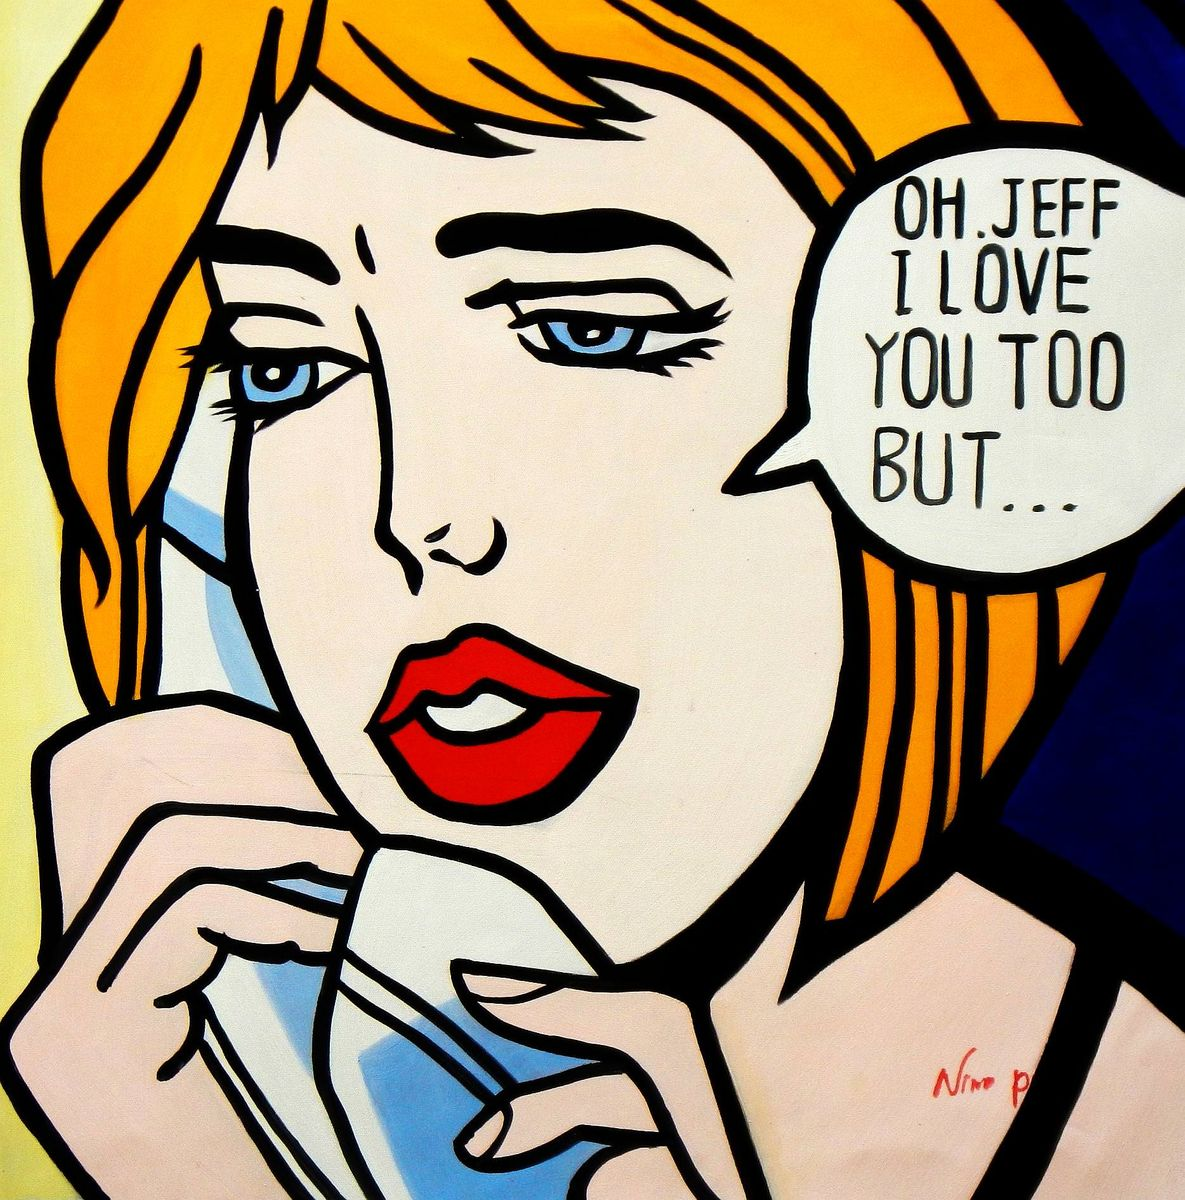 Homage to Roy Lichtenstein - I love you Pop Art e93729 60x60cm exquisites Ölbild handgemalt